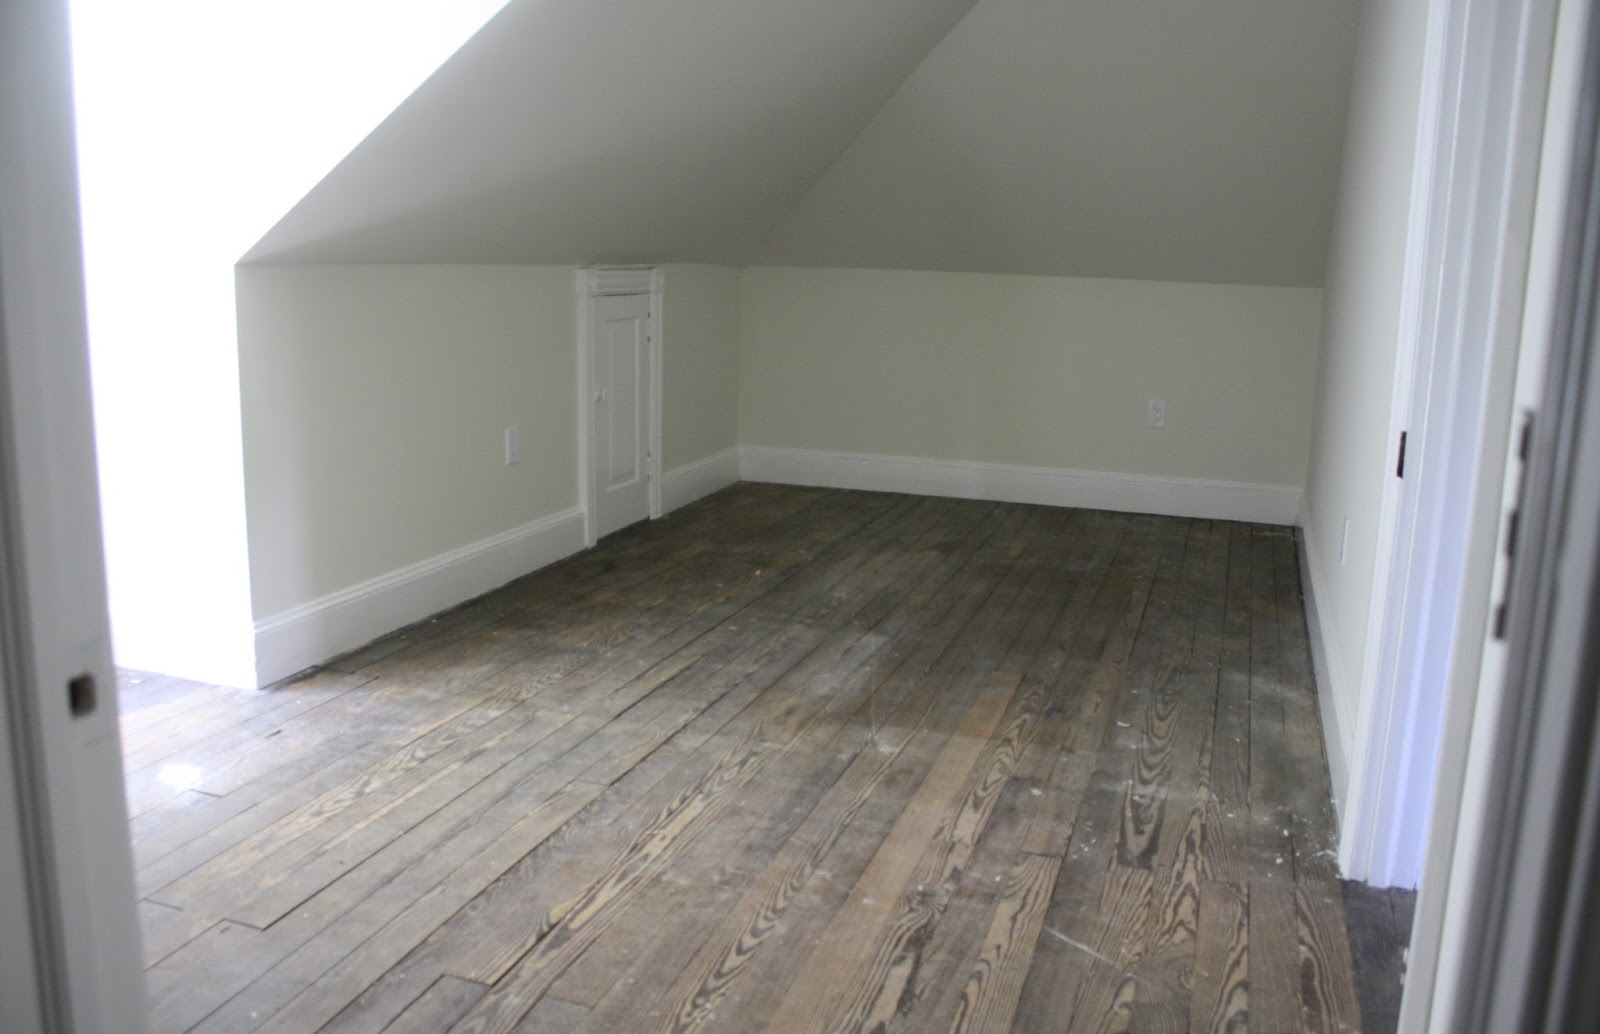 High street market 3rd floor refinished hardwood floor diy for Refinishing painted hardwood floors